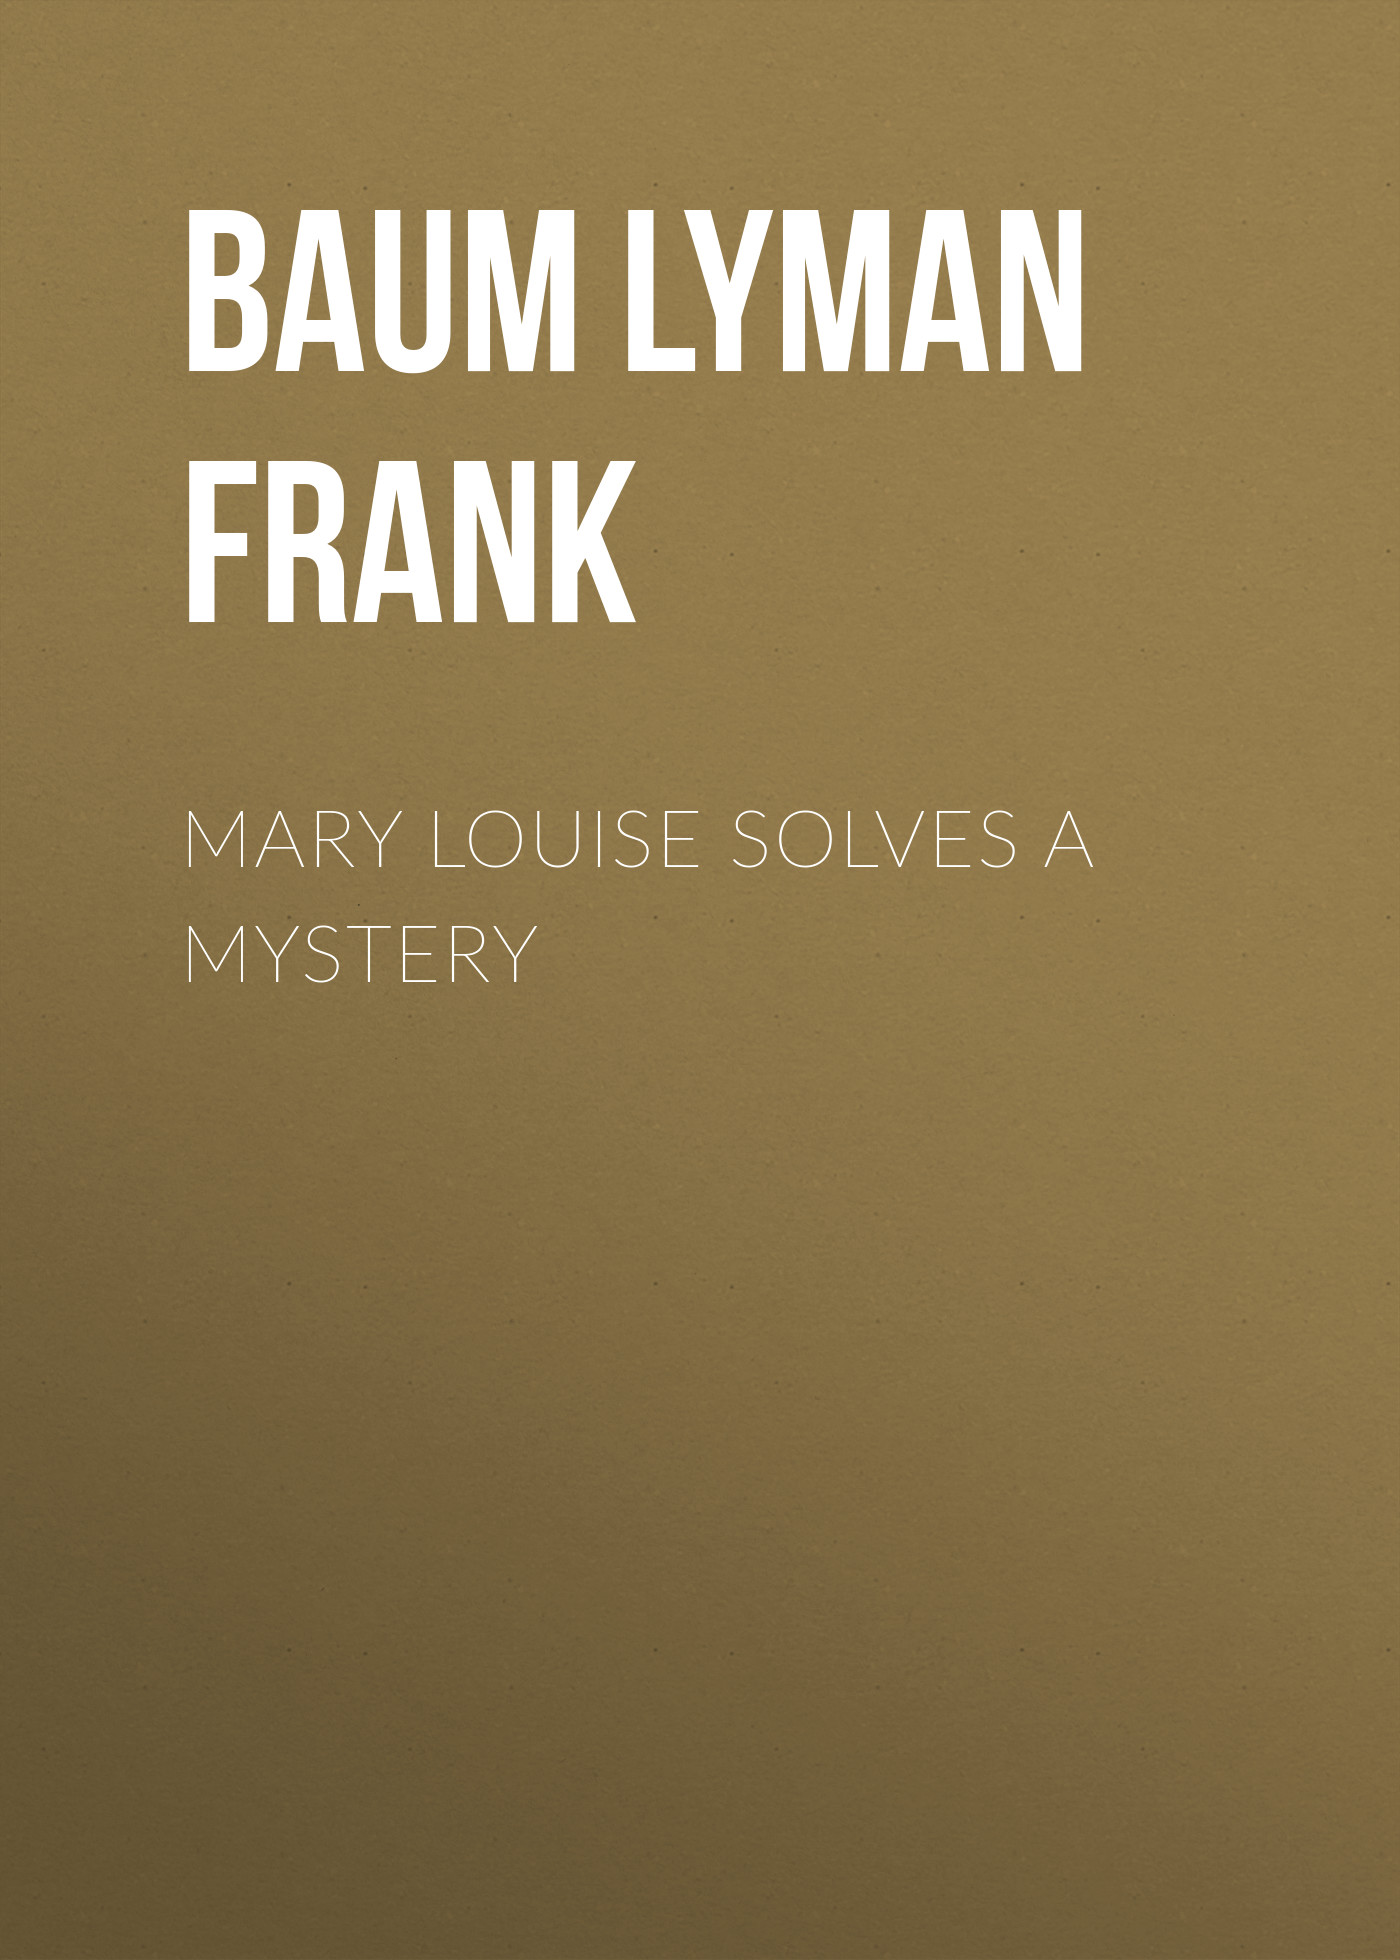 все цены на Лаймен Фрэнк Баум Mary Louise Solves a Mystery